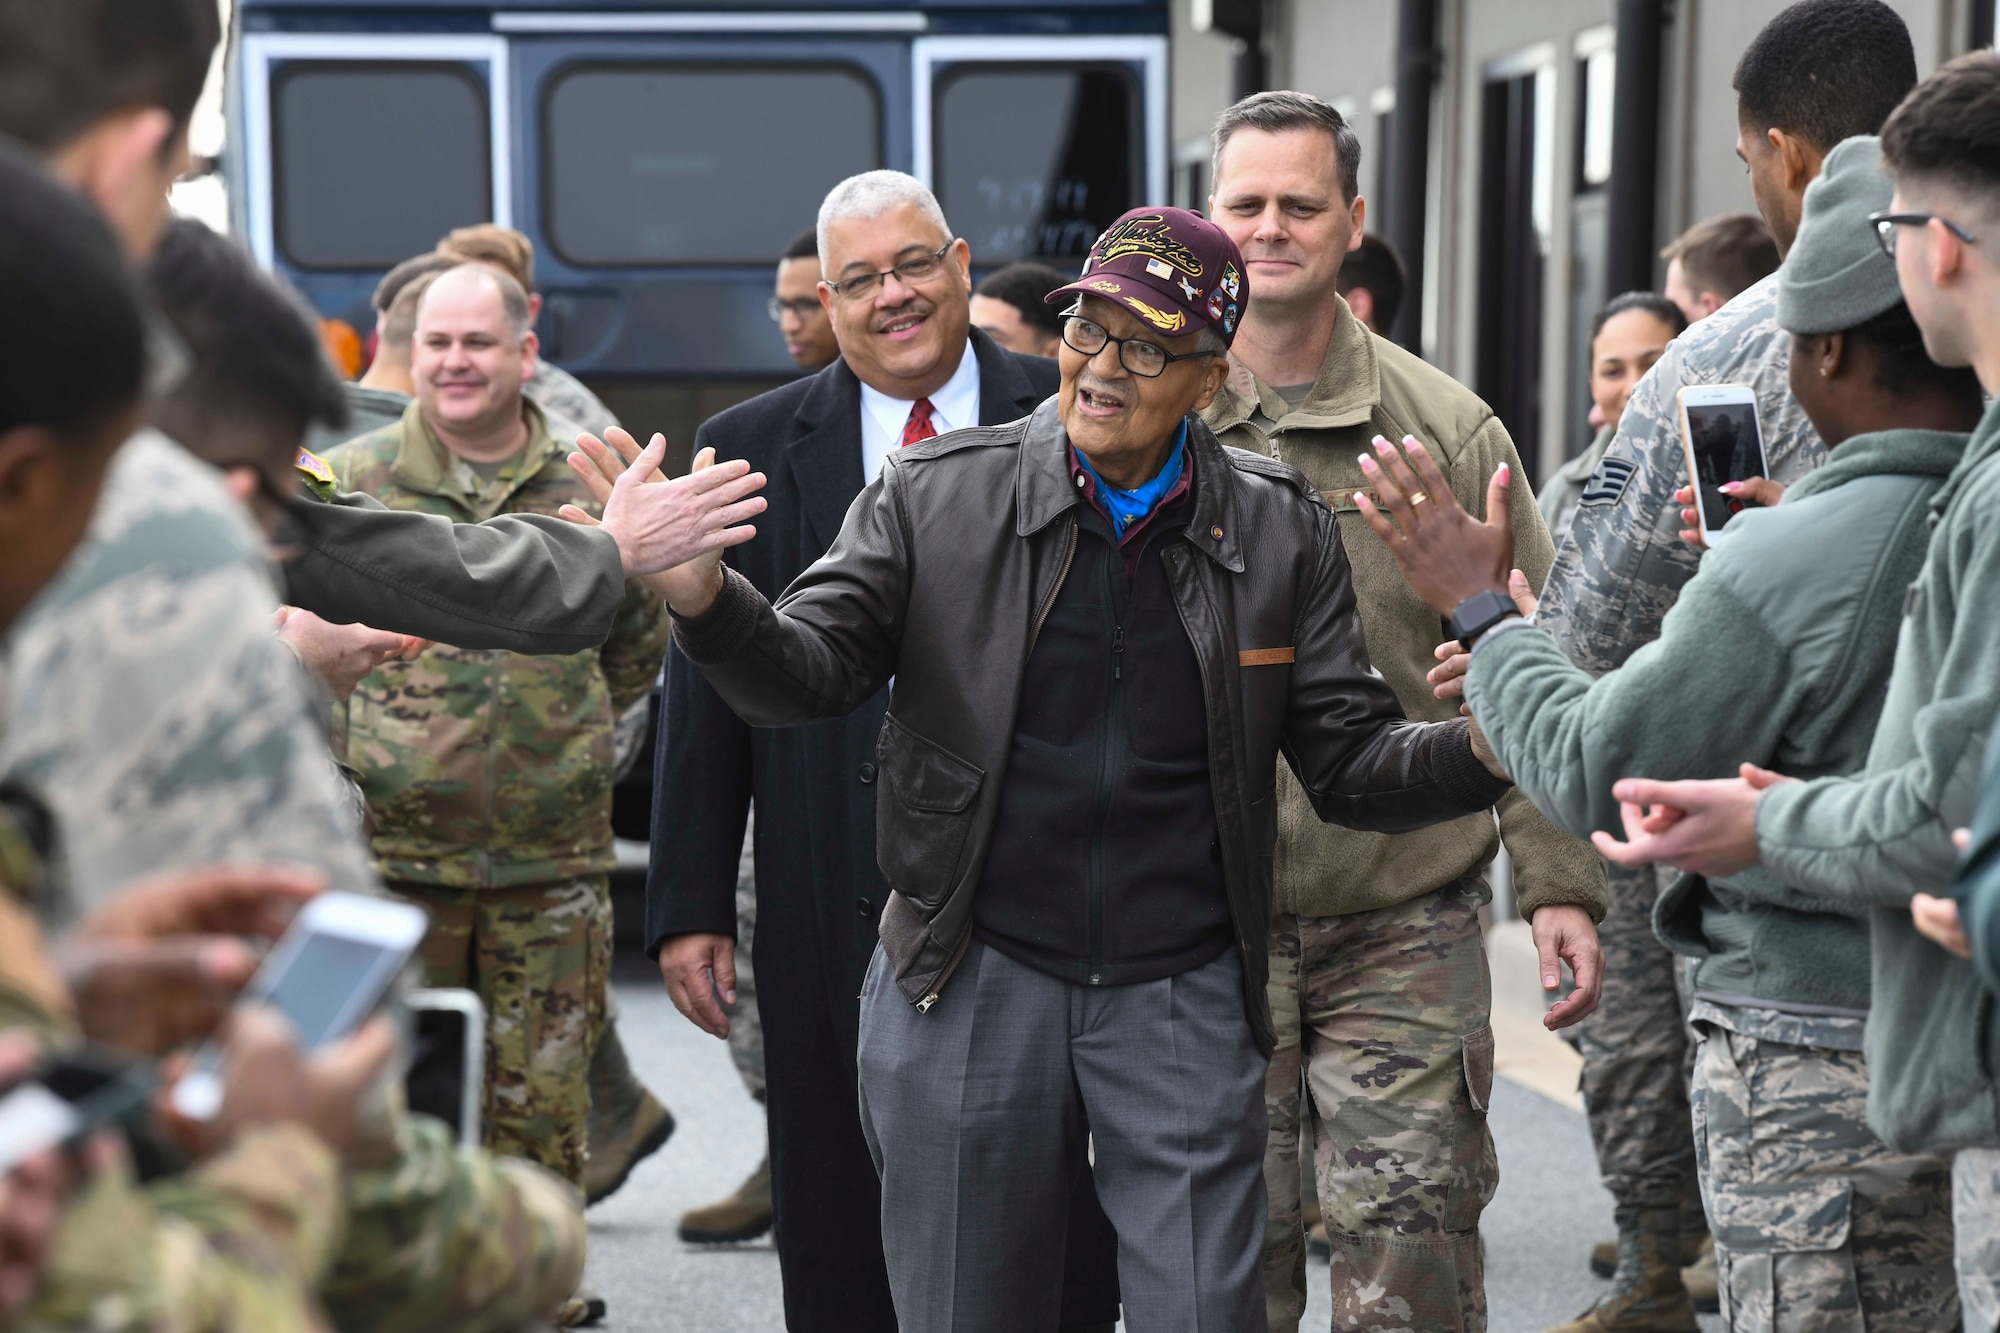 Retired Col. Charles McGee, one of the Tuskegee Airmen, high-fives Airmen during his visit Dec. 6, 2019, at Dover Air Force Base, Del. McGee served a total of 30 years in the U.S. Air Force, beginning with the U.S. Army Air Corps, and flew a total of 409 combat missions in World War II, the Korean War and the Vietnam War. The Tuskegee Airmen were the first African-American military aviators in the U.S. Army Air Corps. (U.S. Air Force photo by Senior Airman Christopher Quail)